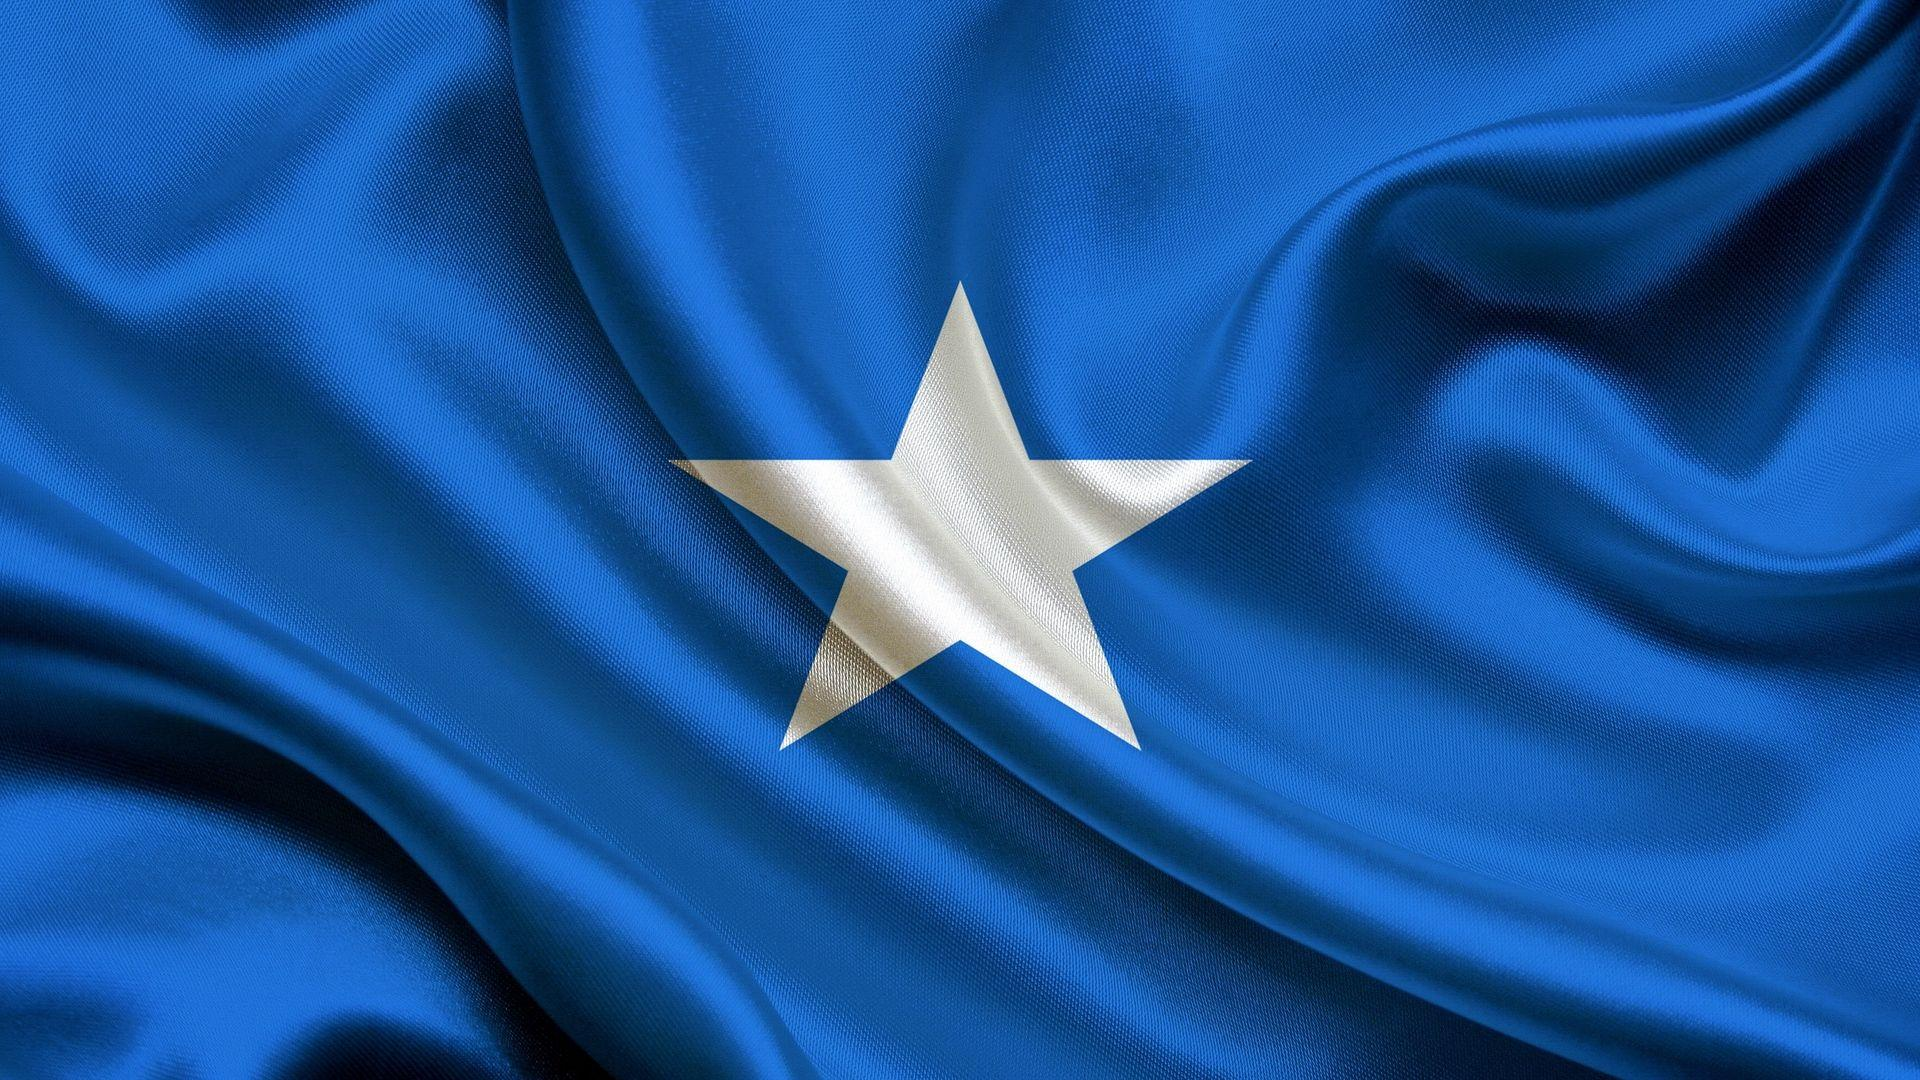 Download wallpaper 1920x1080 flag, somalia, background full hd, hdtv ...